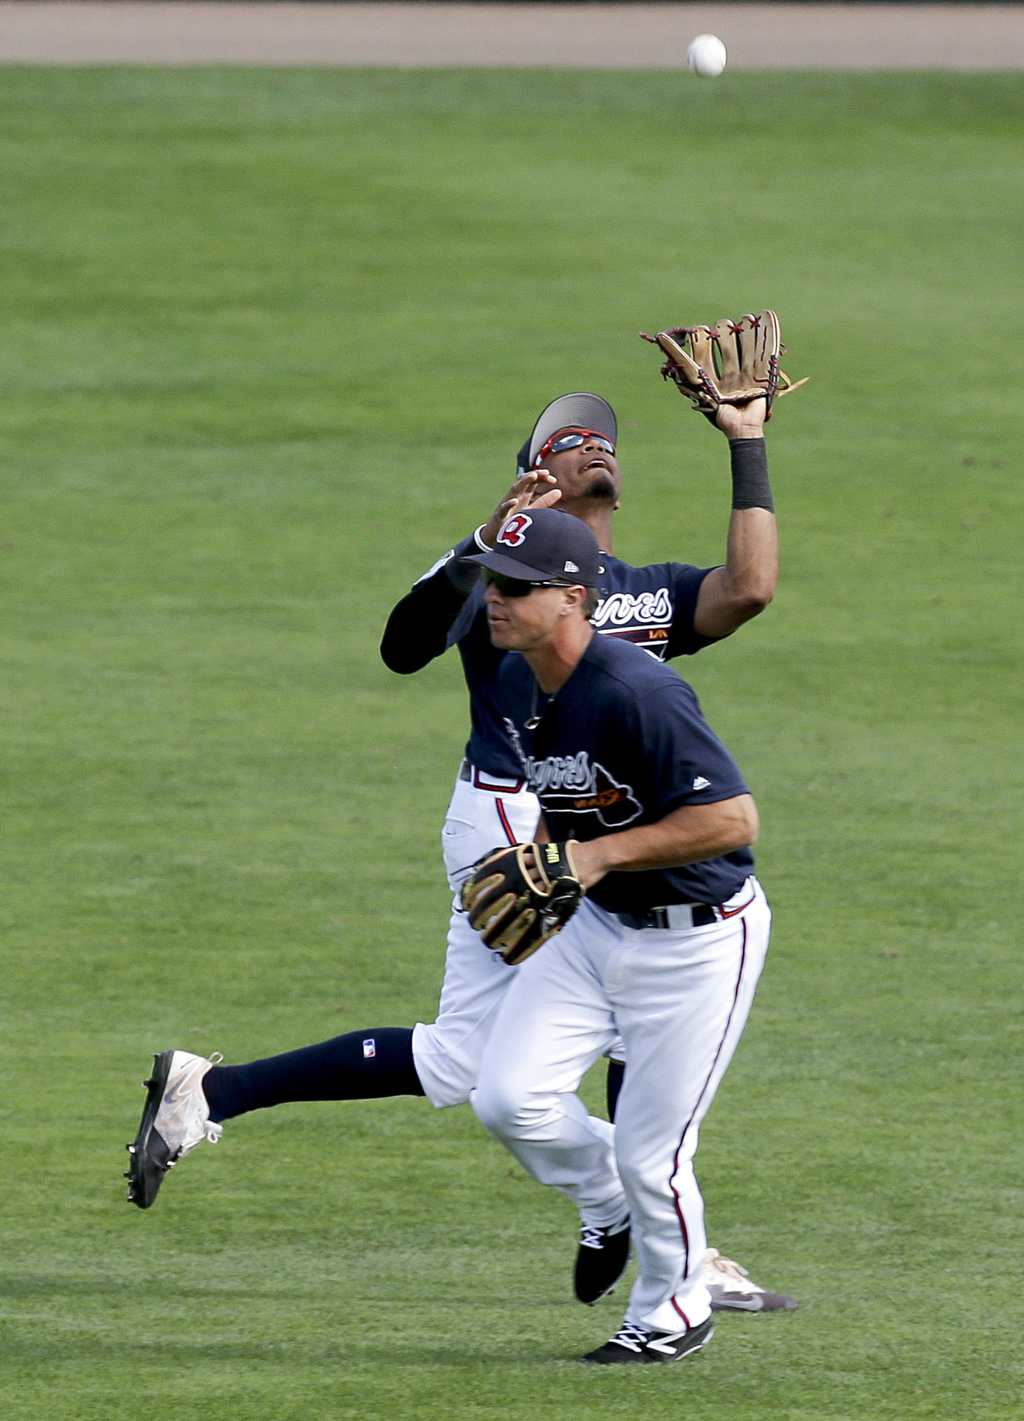 Atlanta Braves shortstop Johan Camargo, rear, catches a pop up as he avoids colliding with second baseman Dylan Moore in the sixth inni...